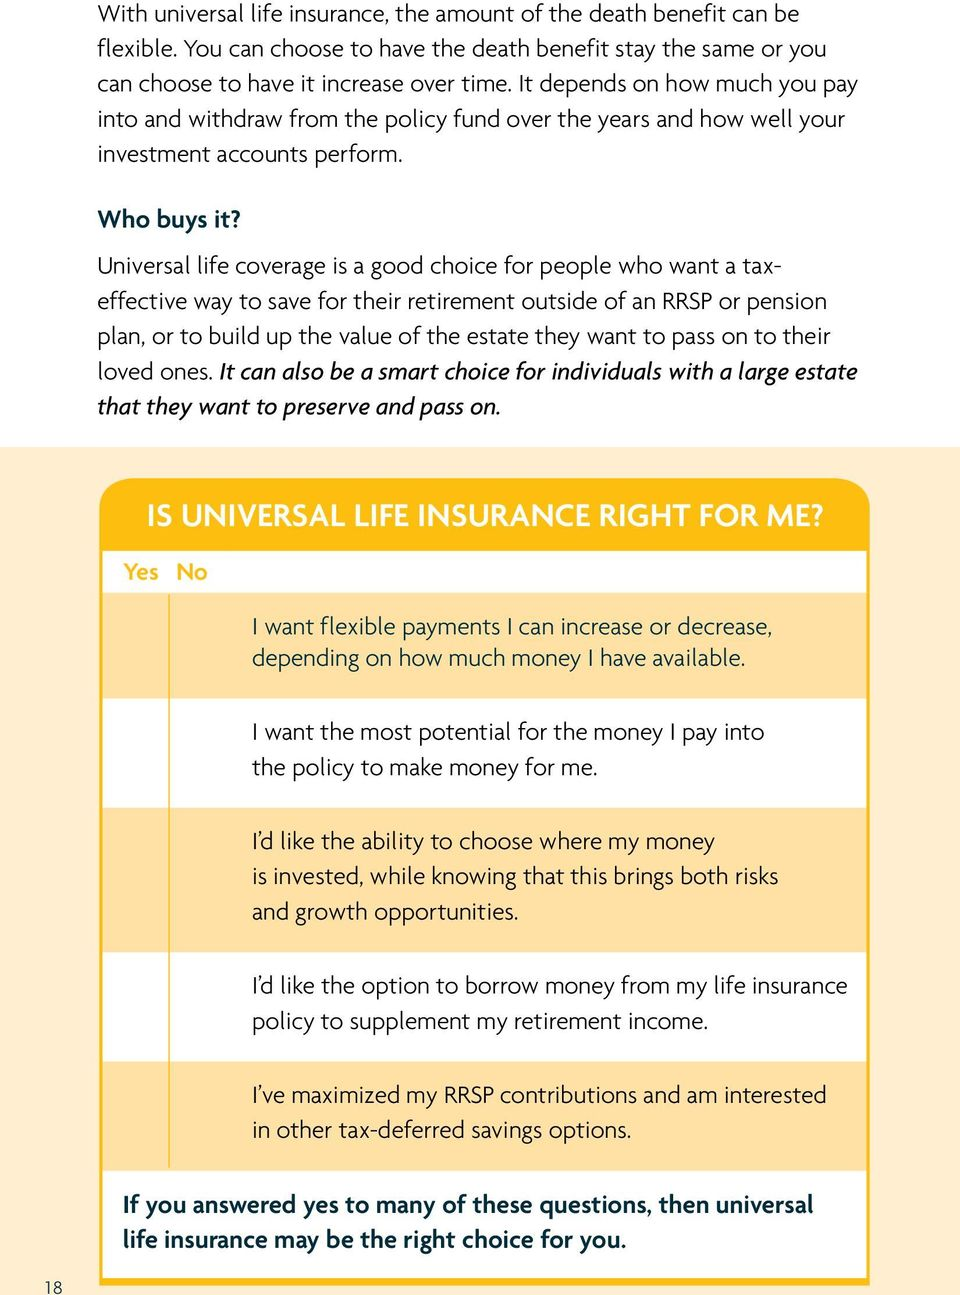 Universal life coverage is a good choice for people who want a taxeffective way to save for their retirement outside of an RRSP or pension plan, or to build up the value of the estate they want to